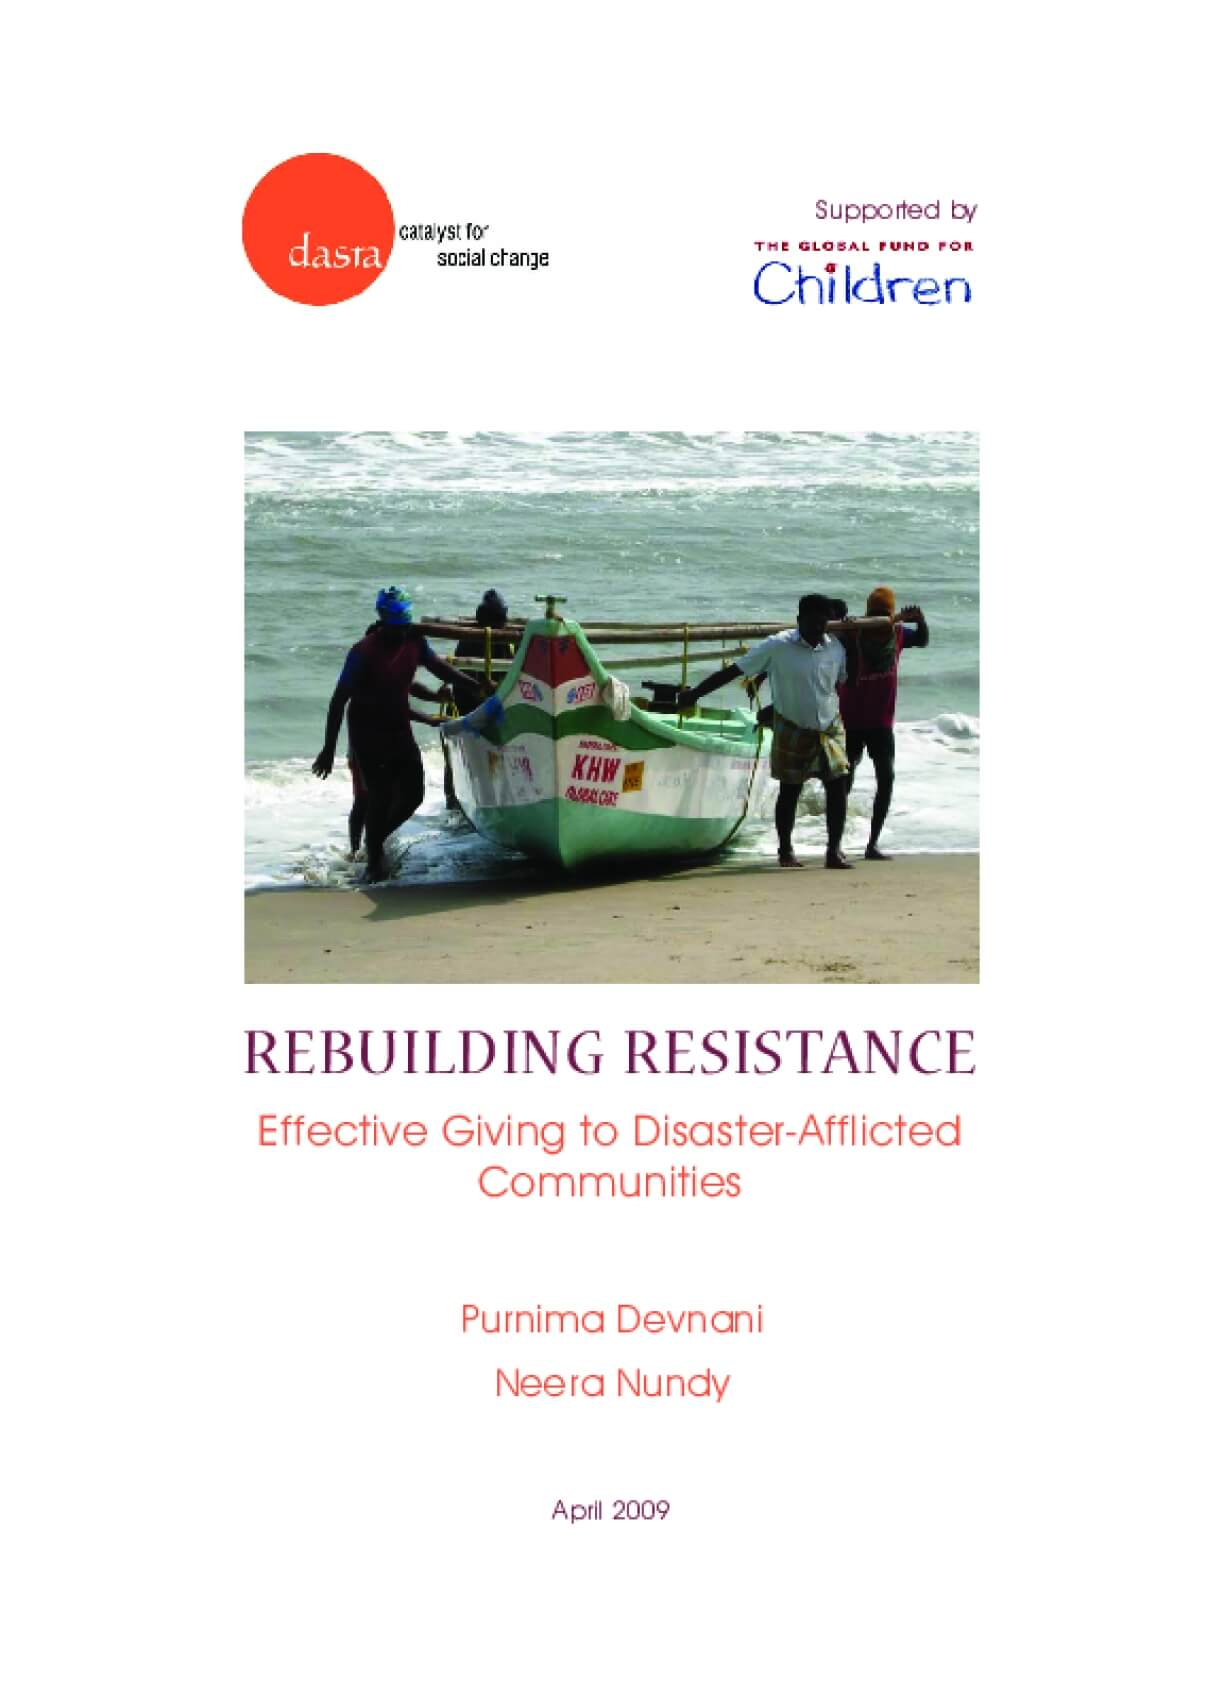 Rebuilding Resistance: Effective Giving to Disaster-Afflicted Communities